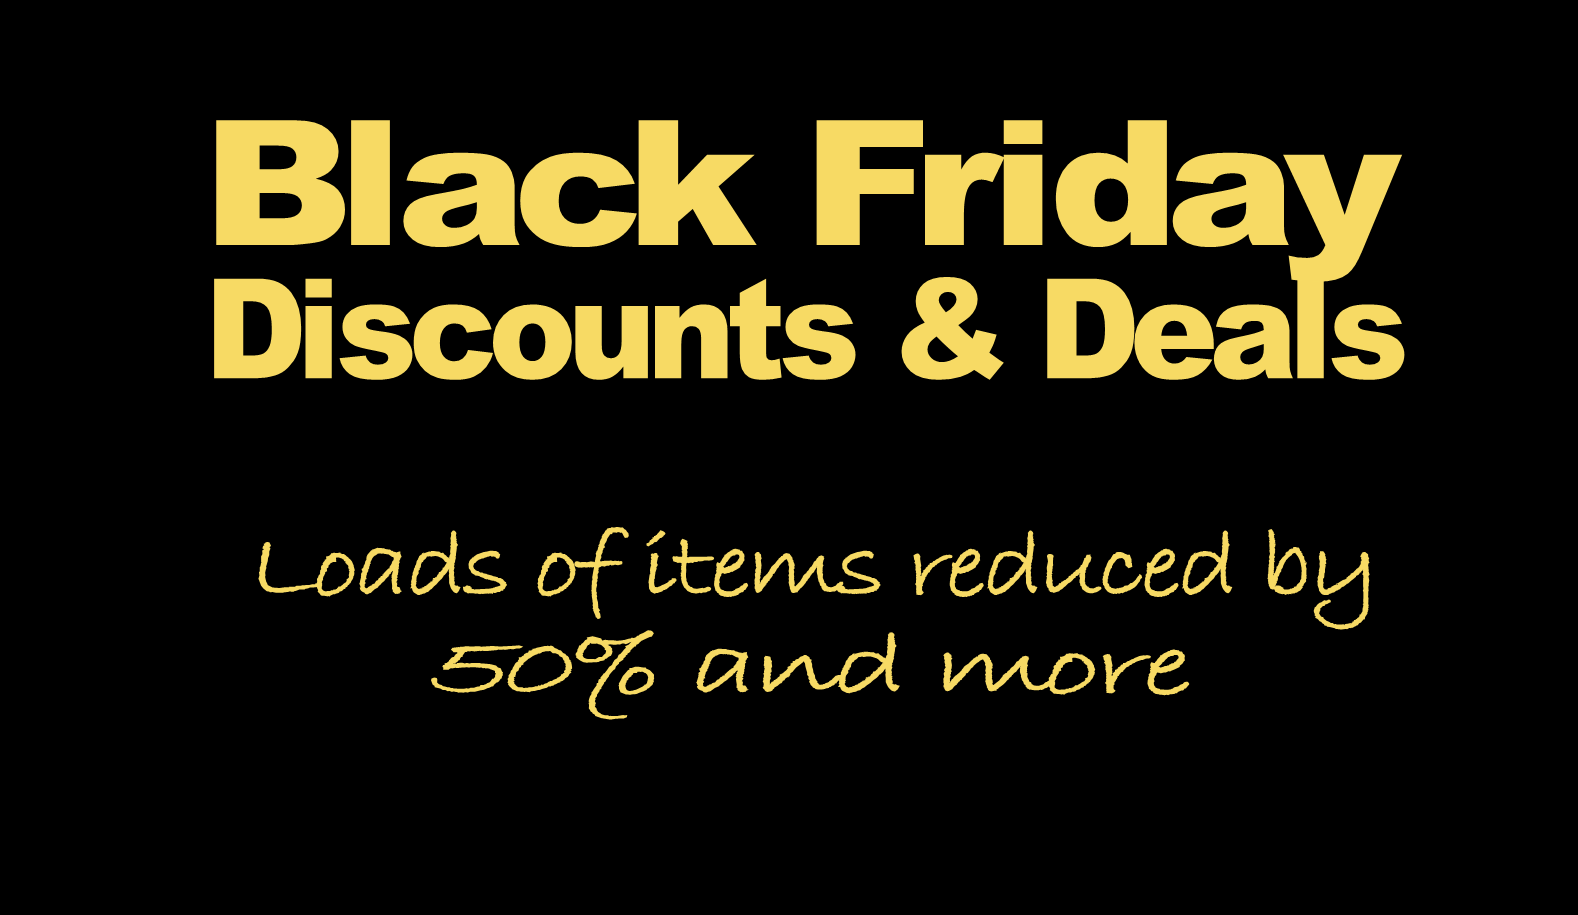 Black Friday Shopping Deals - up to 50% off